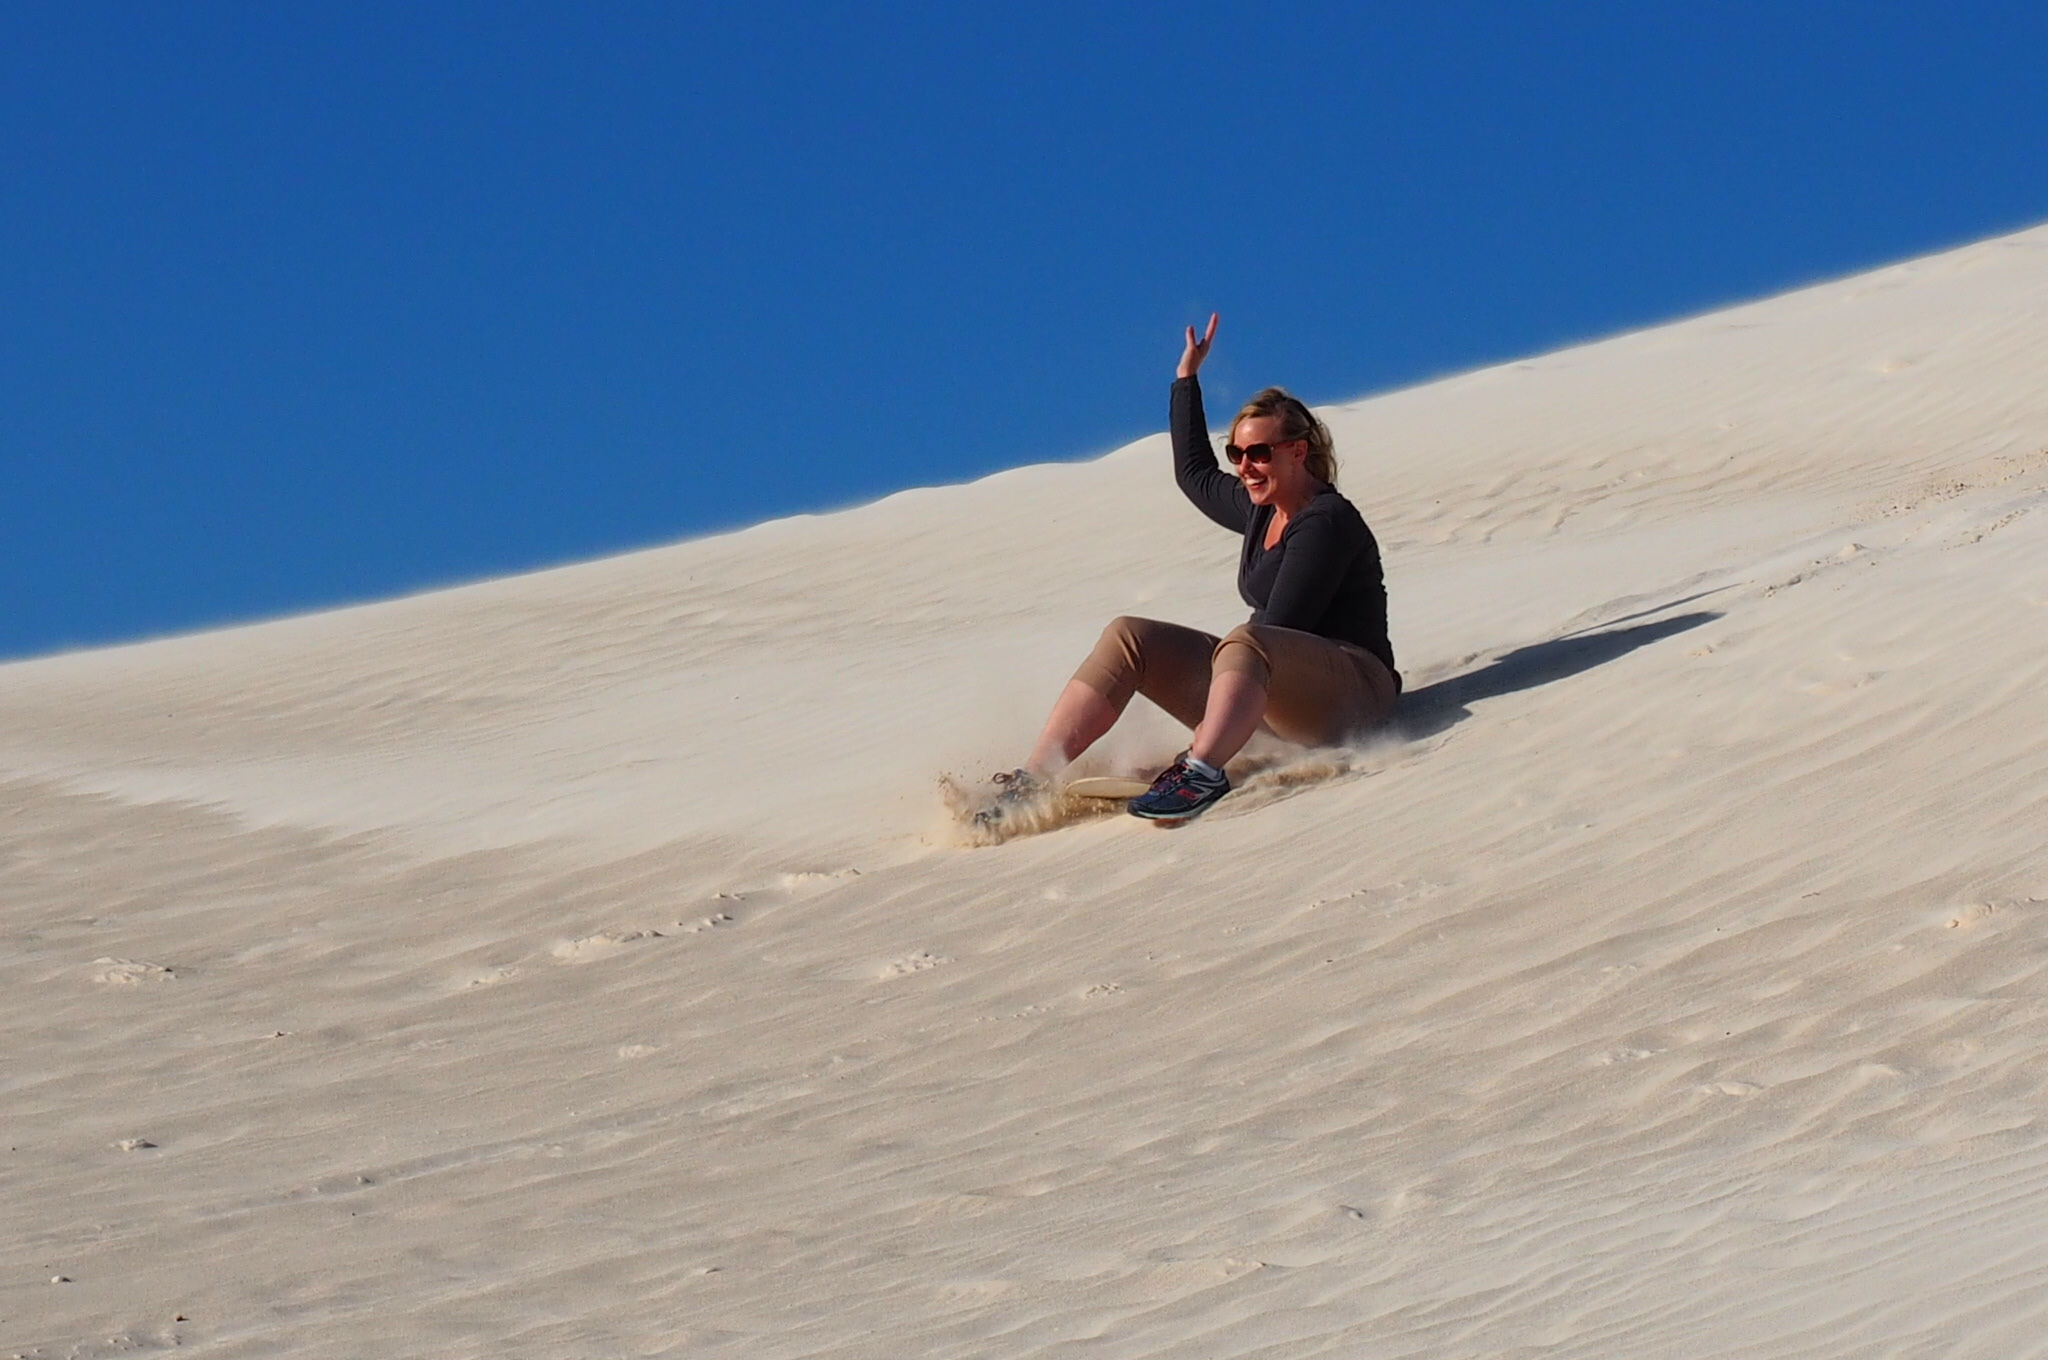 9-amazing-things-to-do-in-perth-before-the-year-ends-lancelin-sand-dunes.jpg